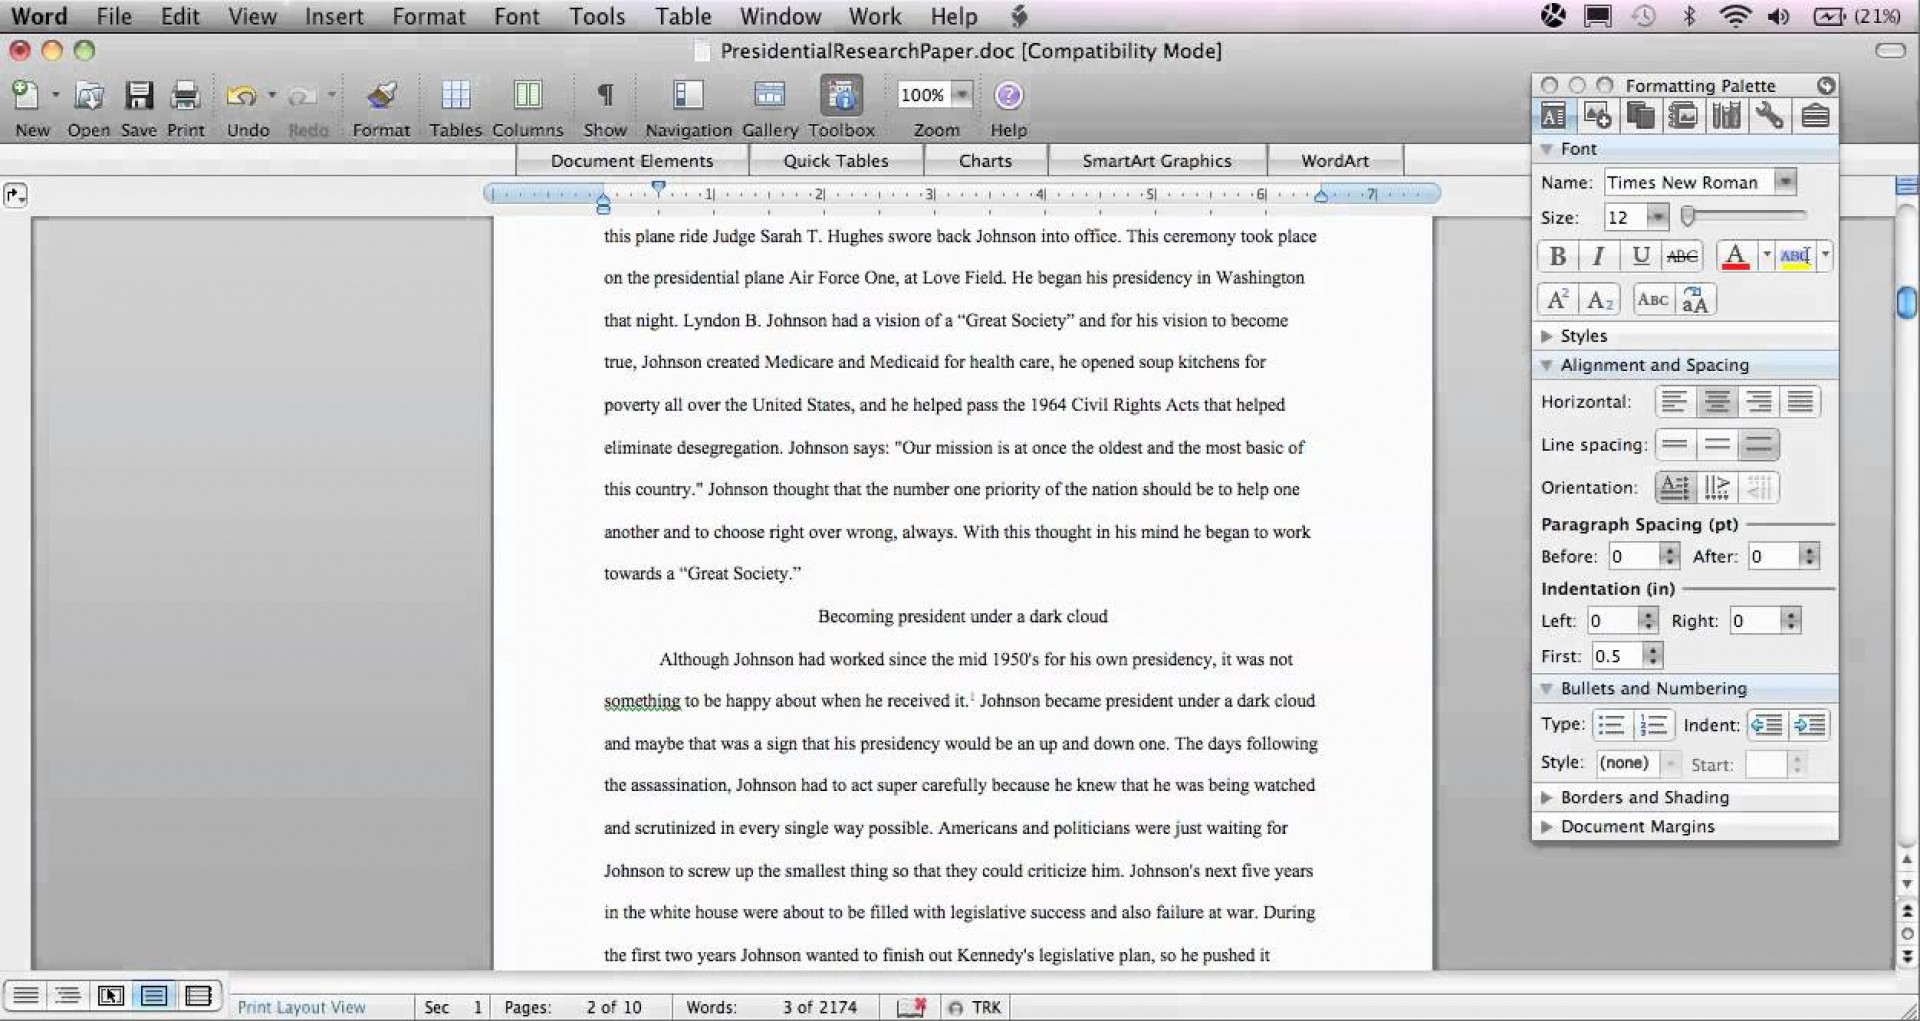 005 Maxresdefault Research Paper How To Format In Fantastic A Word Microsoft Make Write 1920